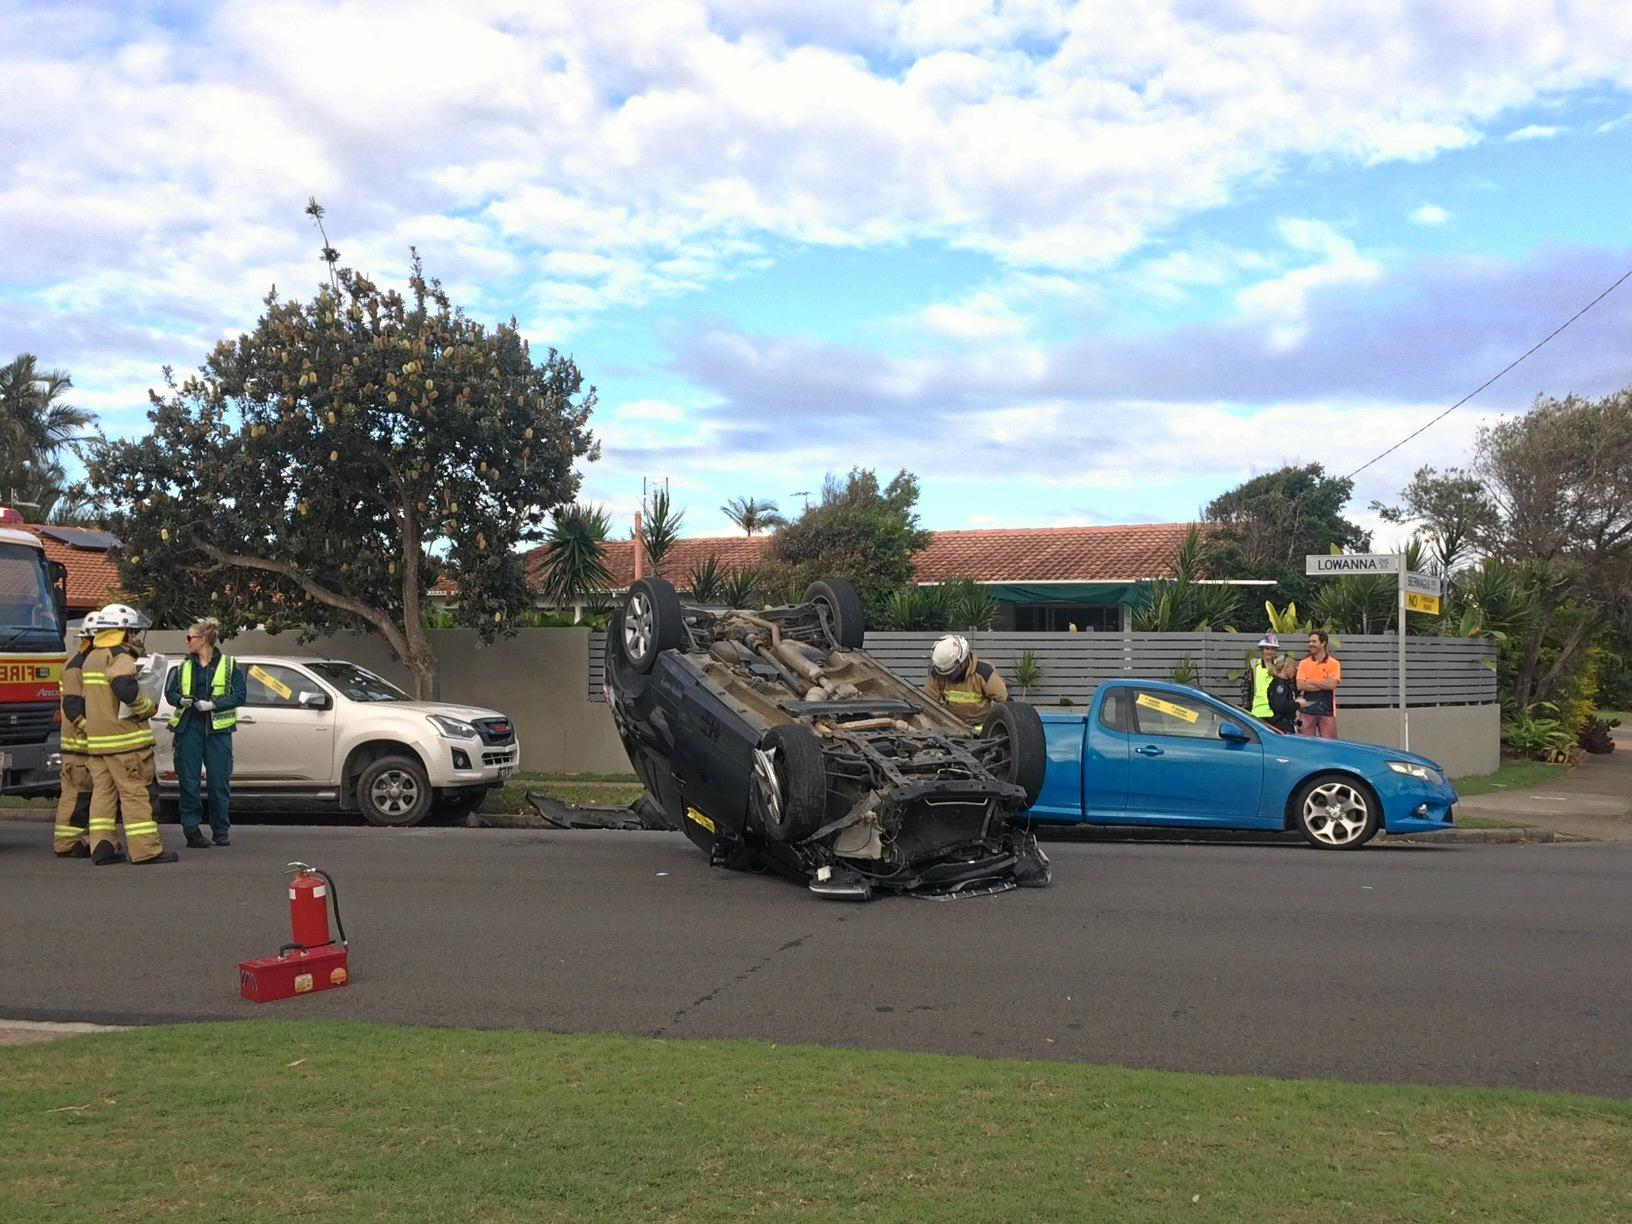 A Queensland Police Service spokesman says the driver is known to police.